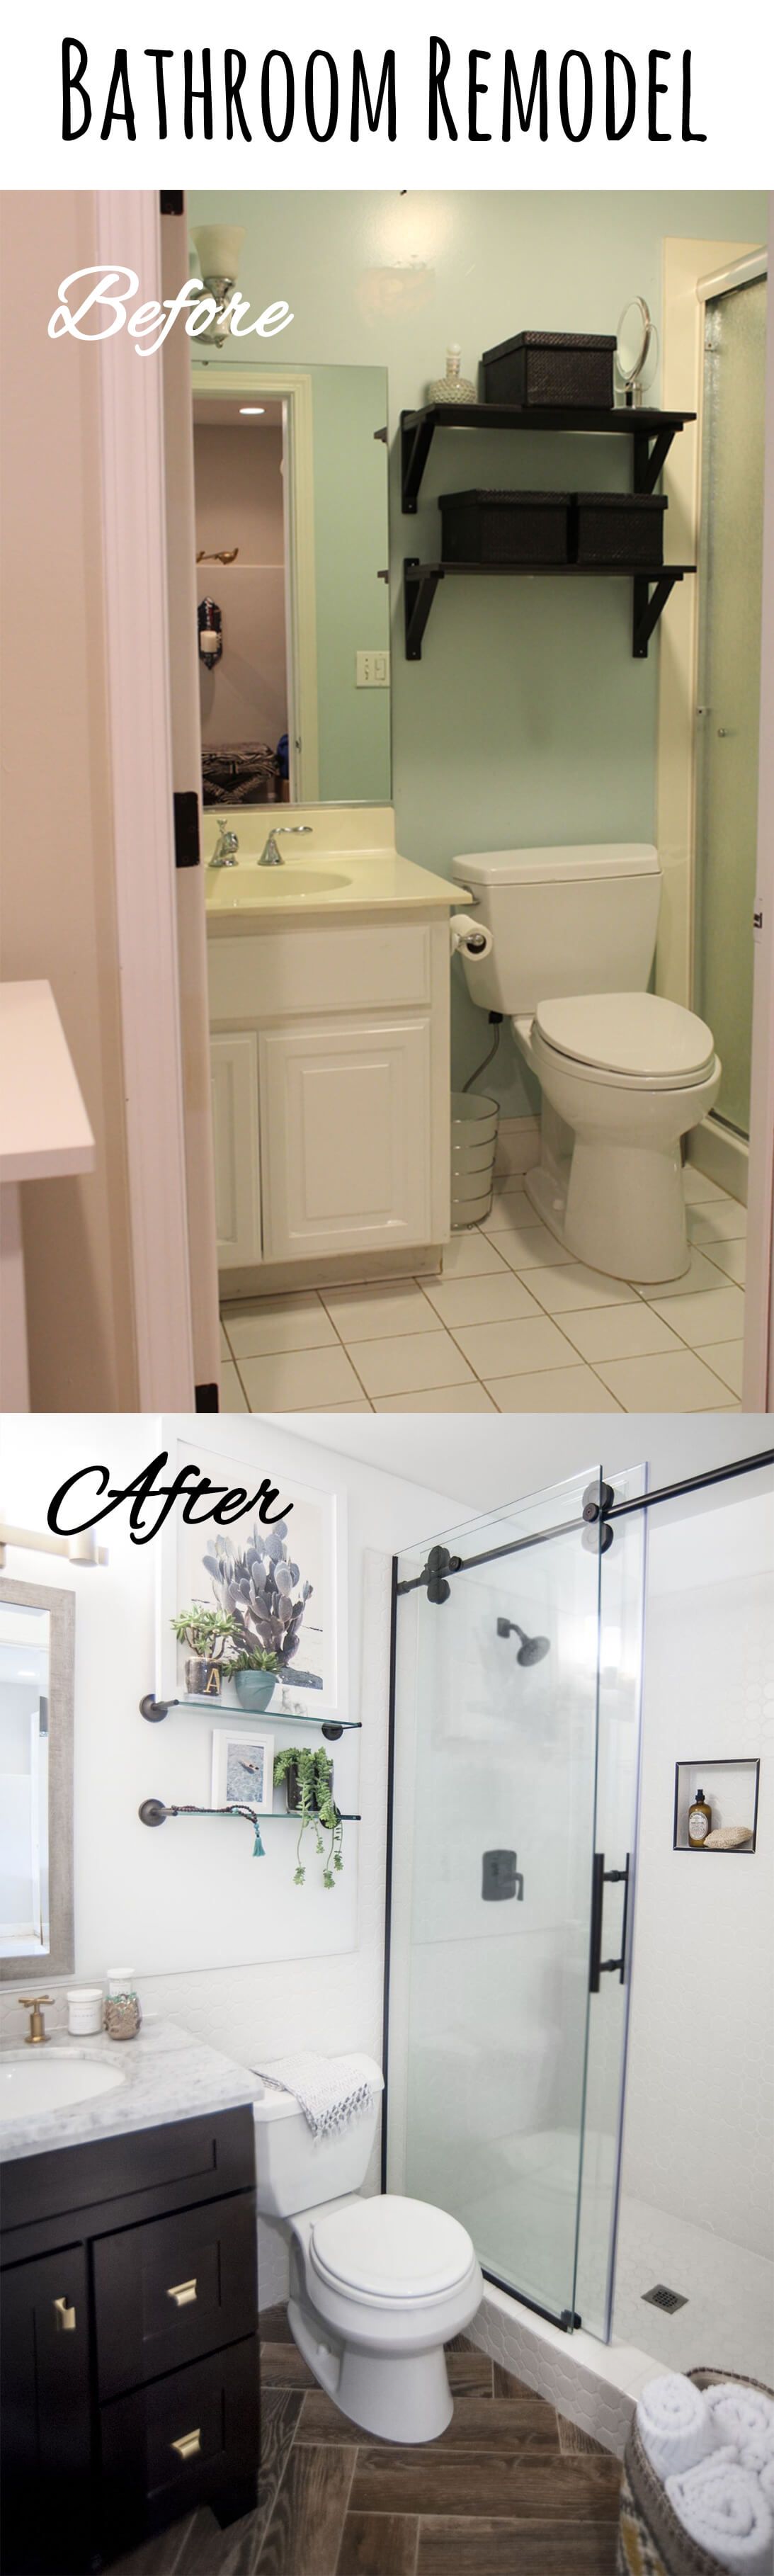 12 Best Budget Friendly Bathroom Makeover Ideas and Designs for 12